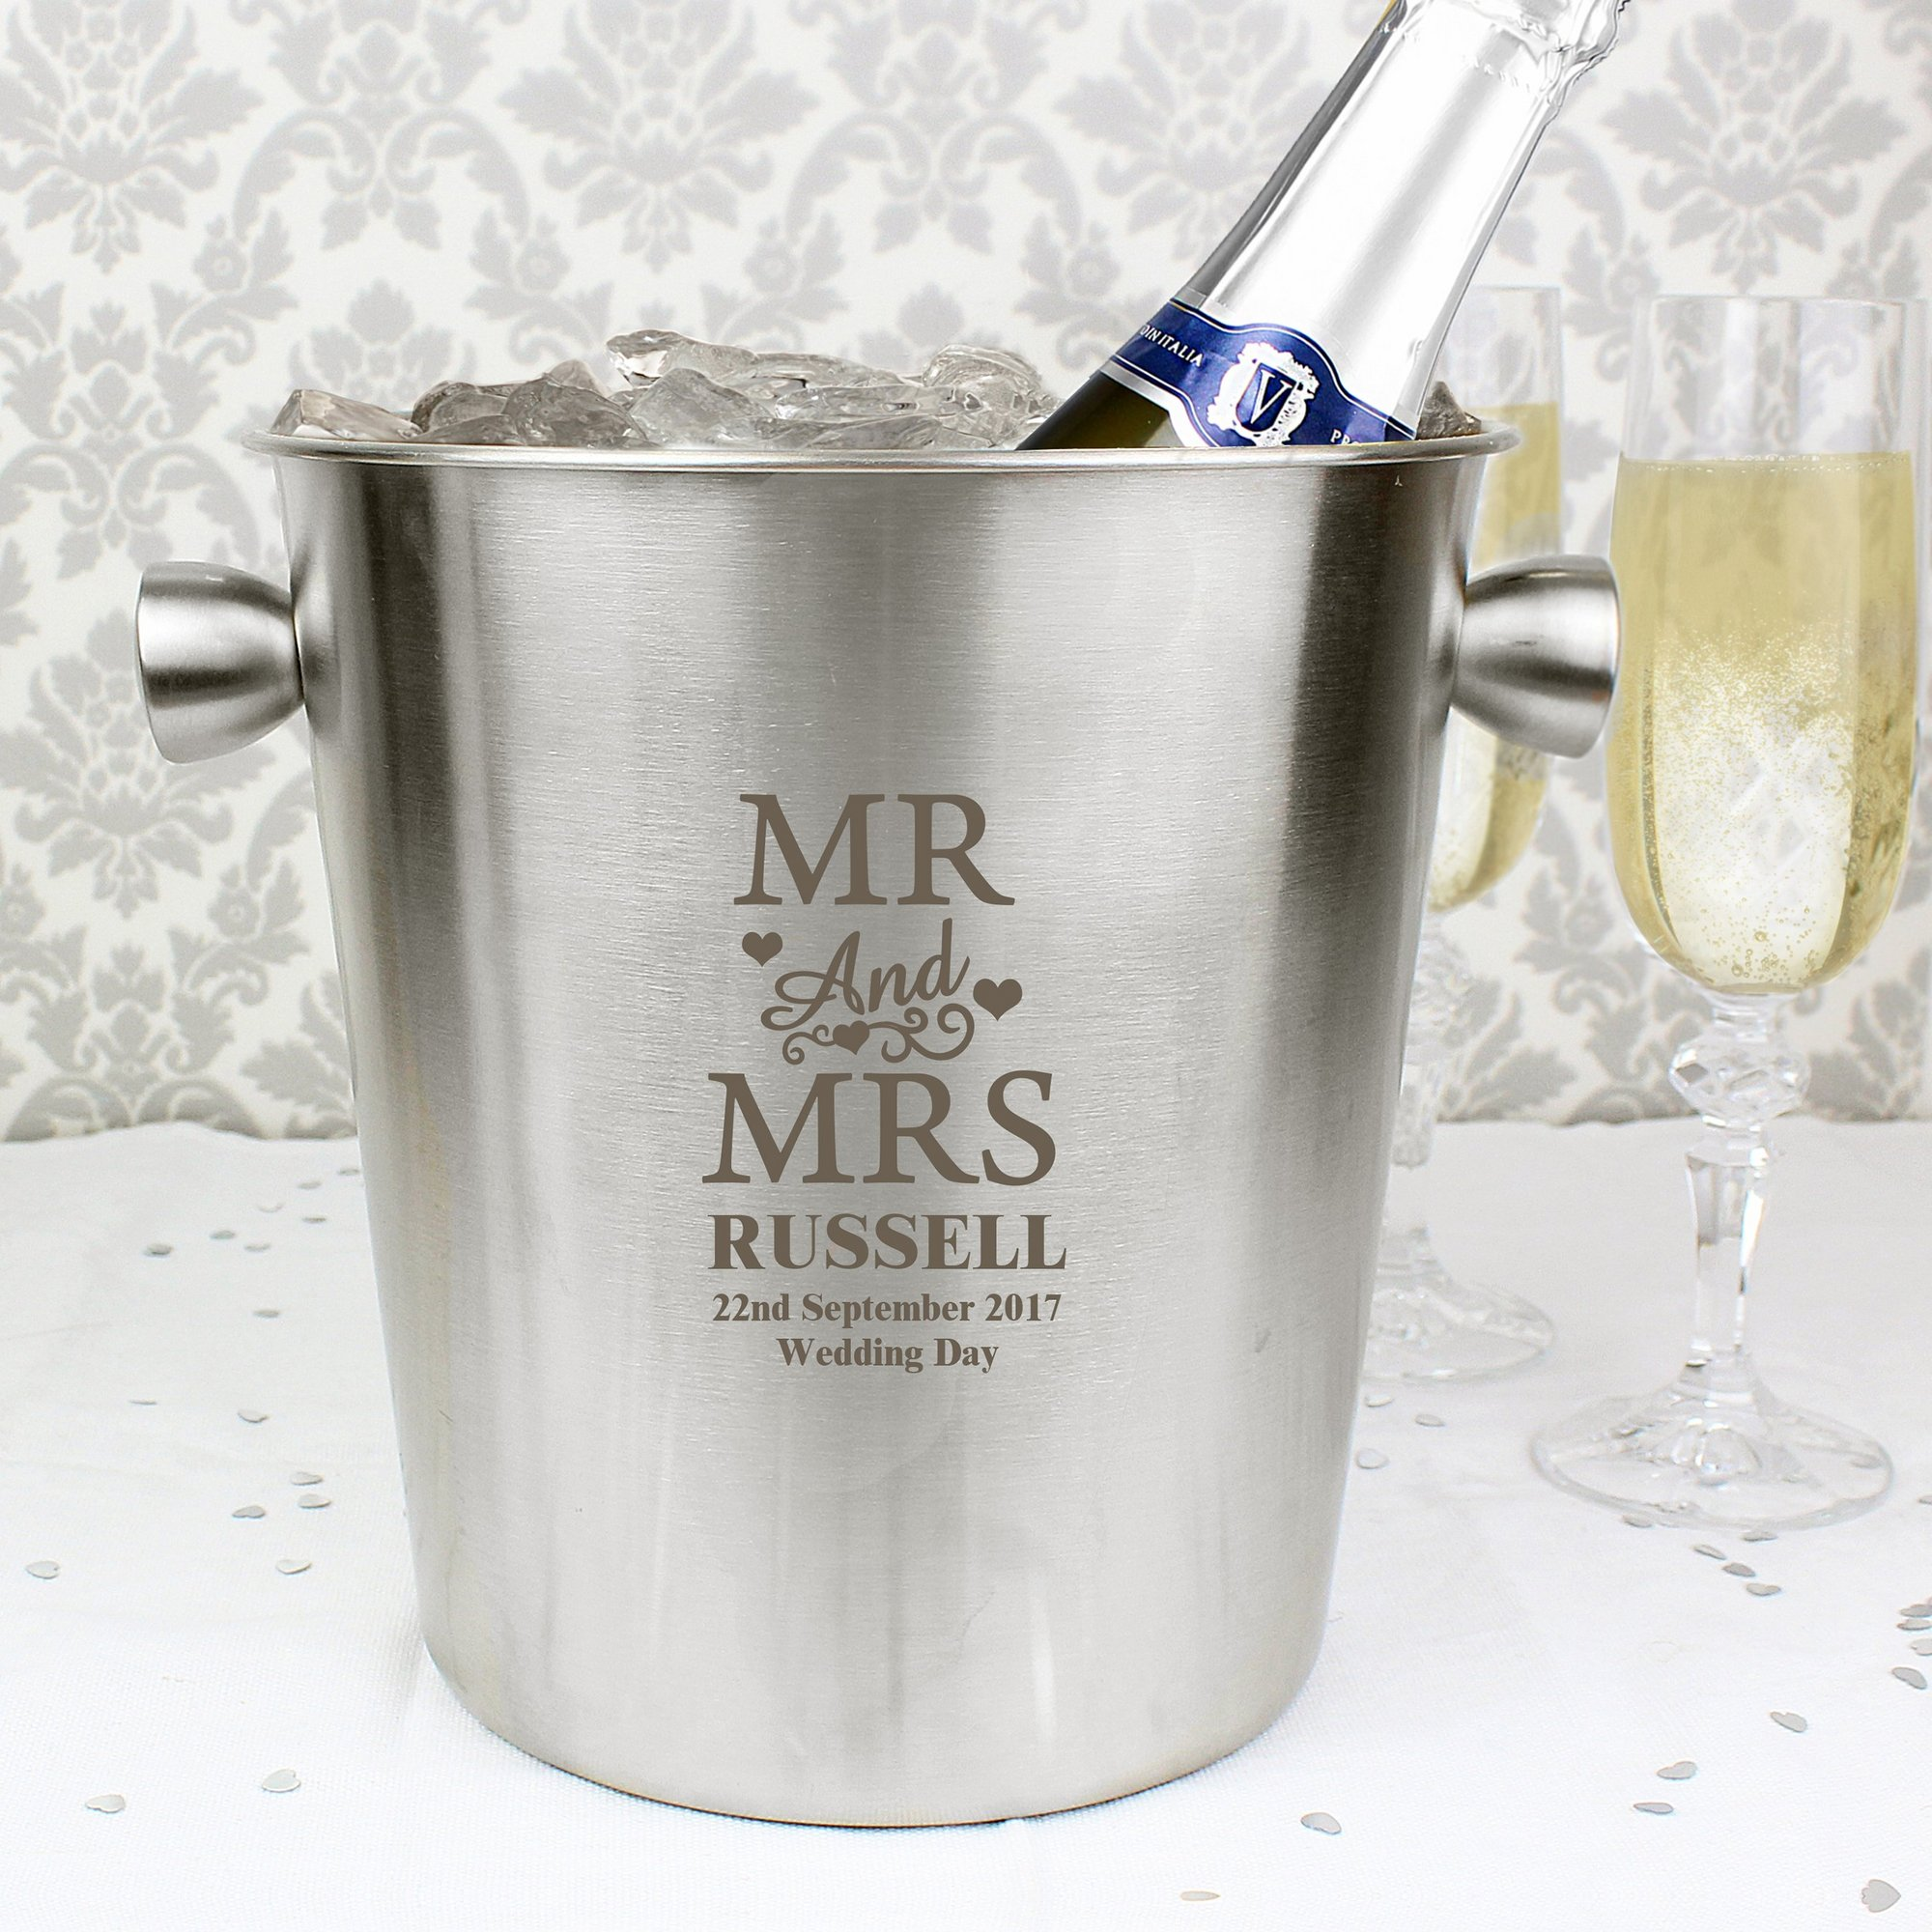 Image of Personalised Mr and Mrs Stainless Steel Ice Bucket